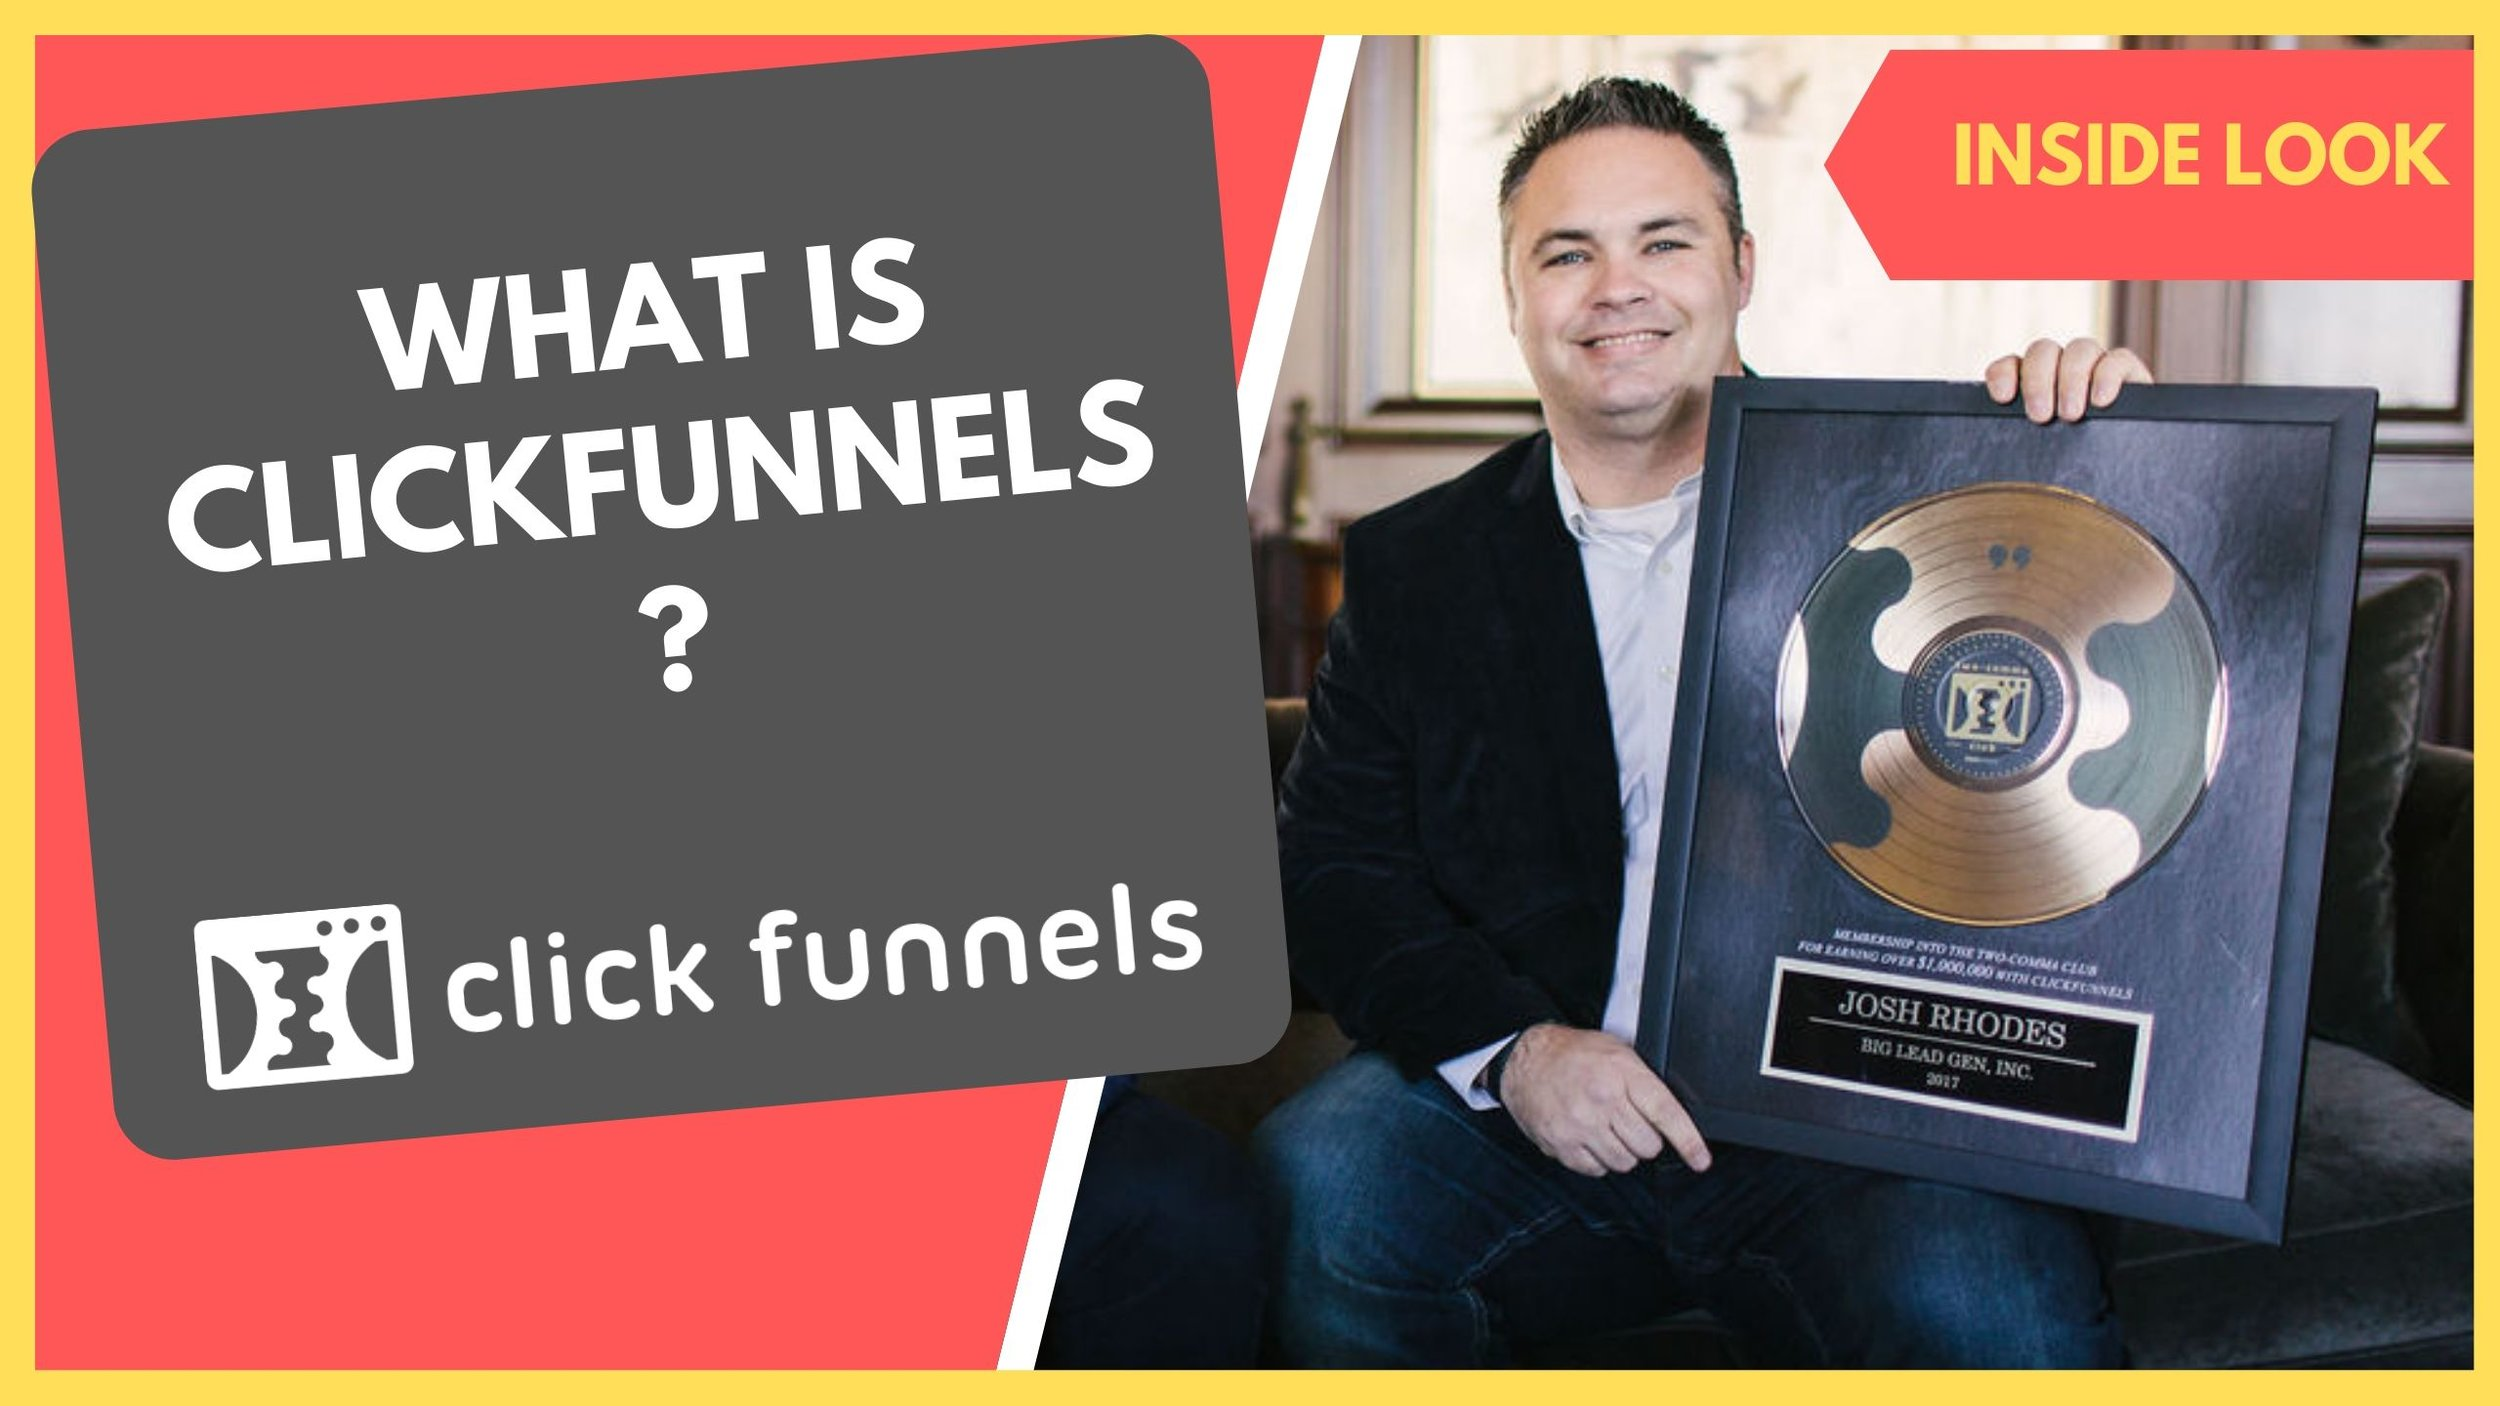 Clickfunnels How To Use Same Funnel Template Multiple Times